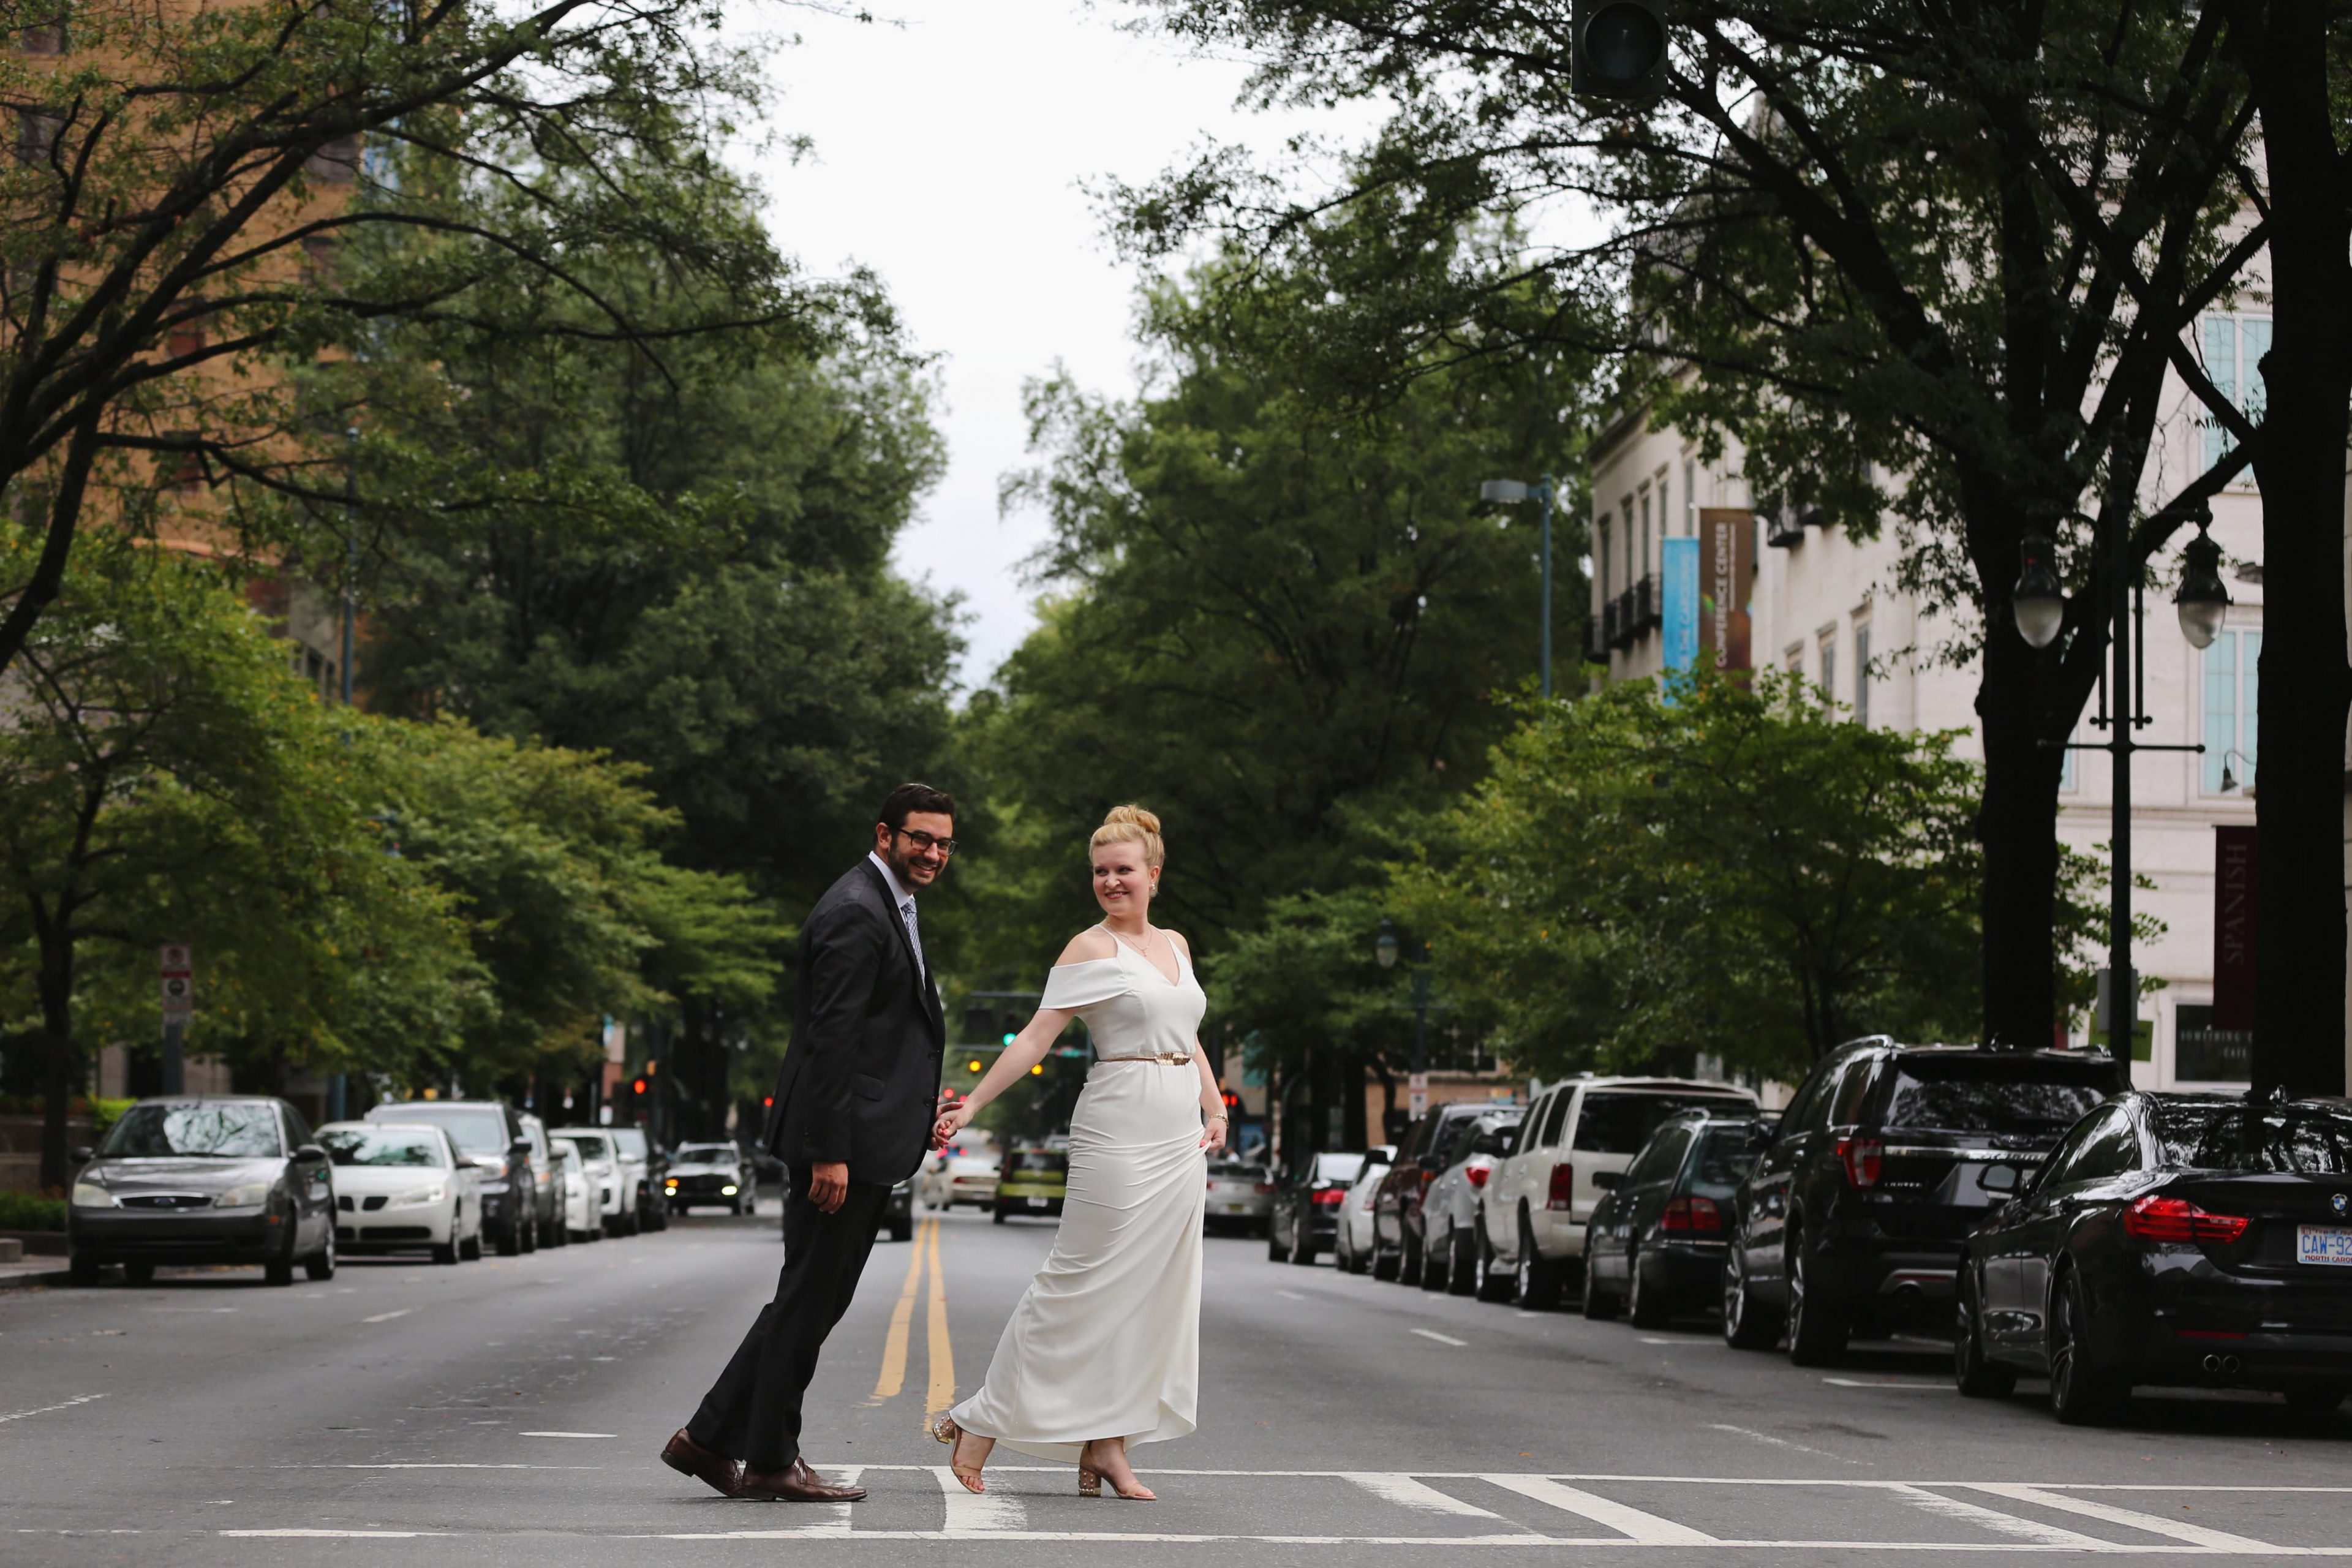 Bride and groom walk hand in hand for bridal portraits in Uptown Charlotte